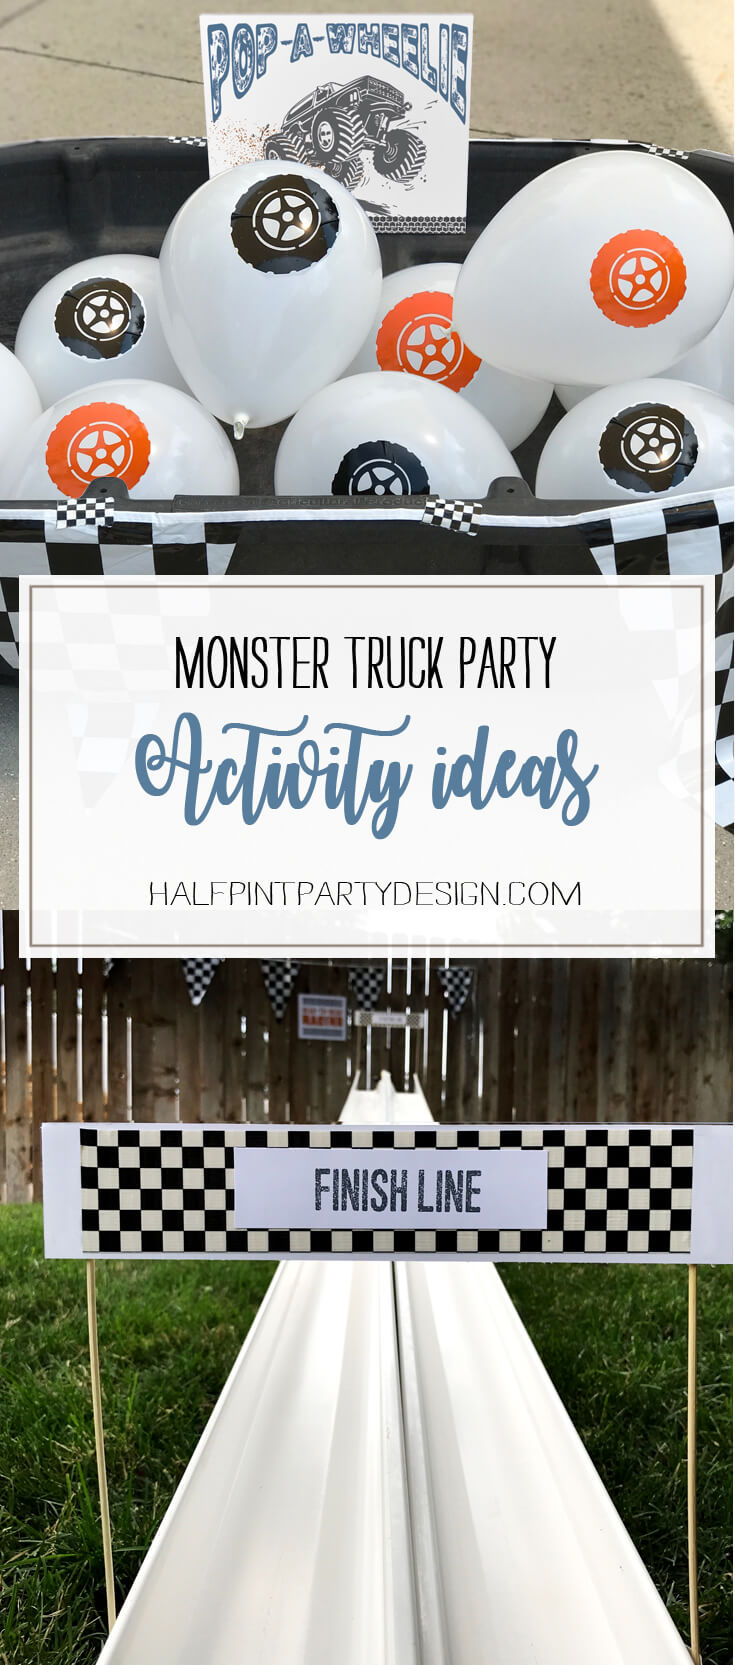 Monster Truck Party Activity Ideas - Halfpint Party Design